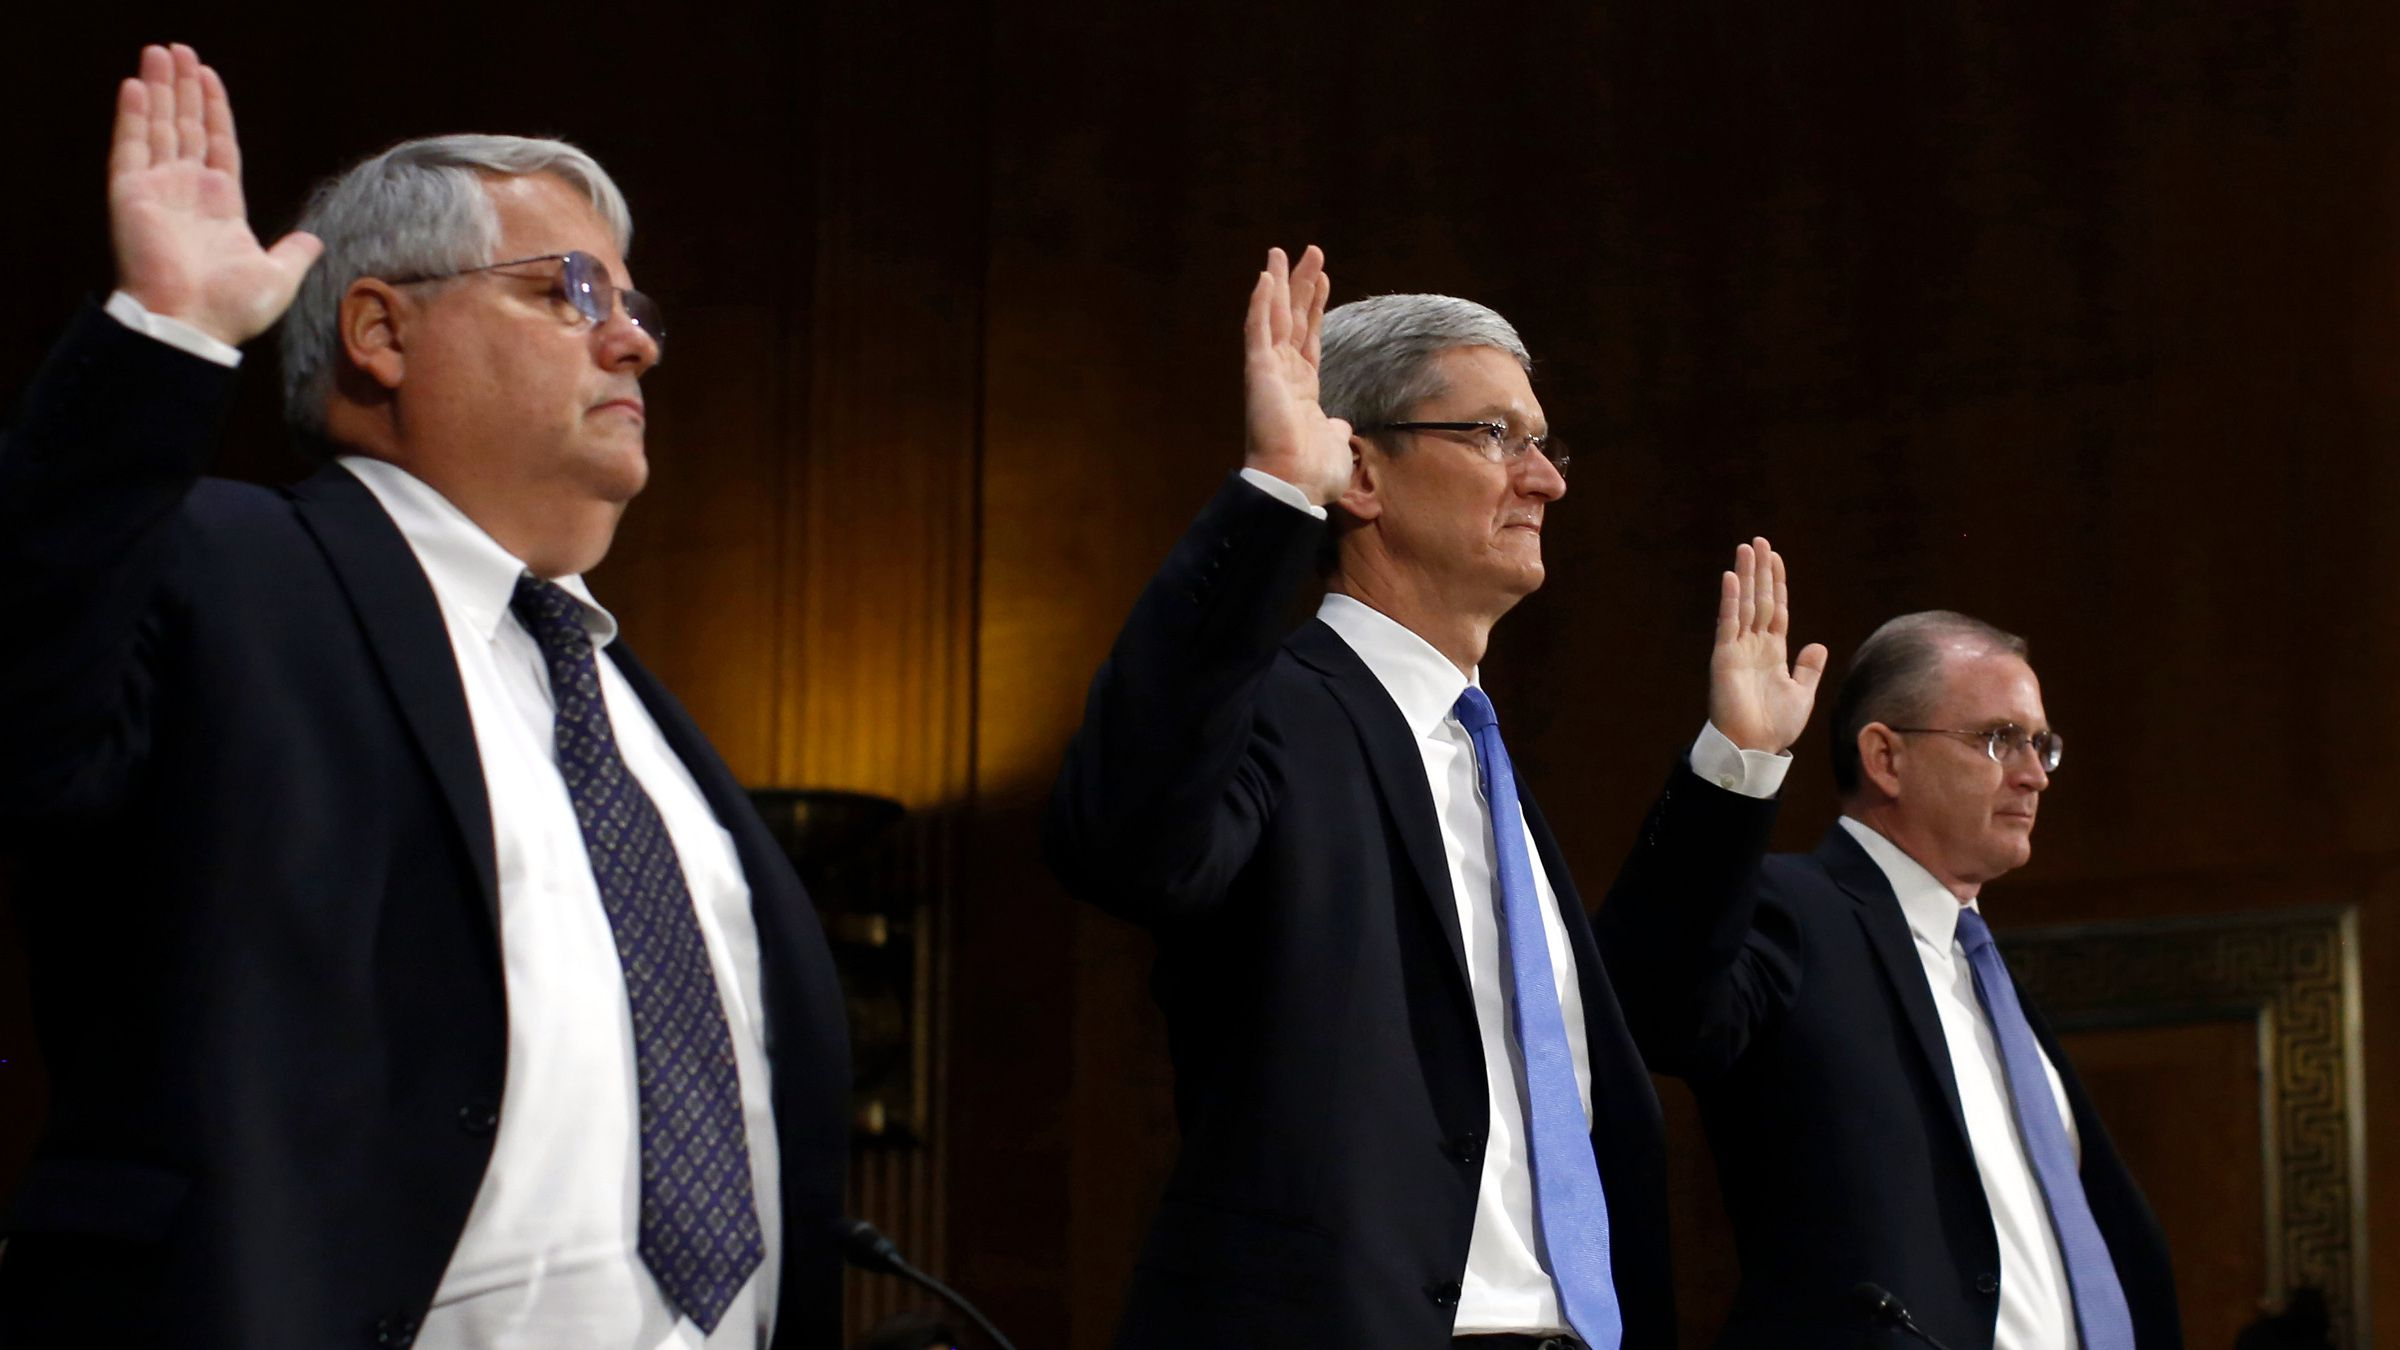 Apple CEO Tim Cook (C) , CFO Peter Oppenheimer (L) and Apple Head of tax operations Philip Bullock are sworn in to testify at a Senate homeland security and governmental affairs investigations subcommittee hearing on offshore profit shifting and the U.S. tax code, on Capitol Hill in Washington, May 21, 2013. Apple Inc came under fire on Tuesday at a Senate hearing over an investigation that alleged the U.S. high technology icon has kept billions of dollars in profits in Irish subsidiaries and paid little or no taxes to any government.